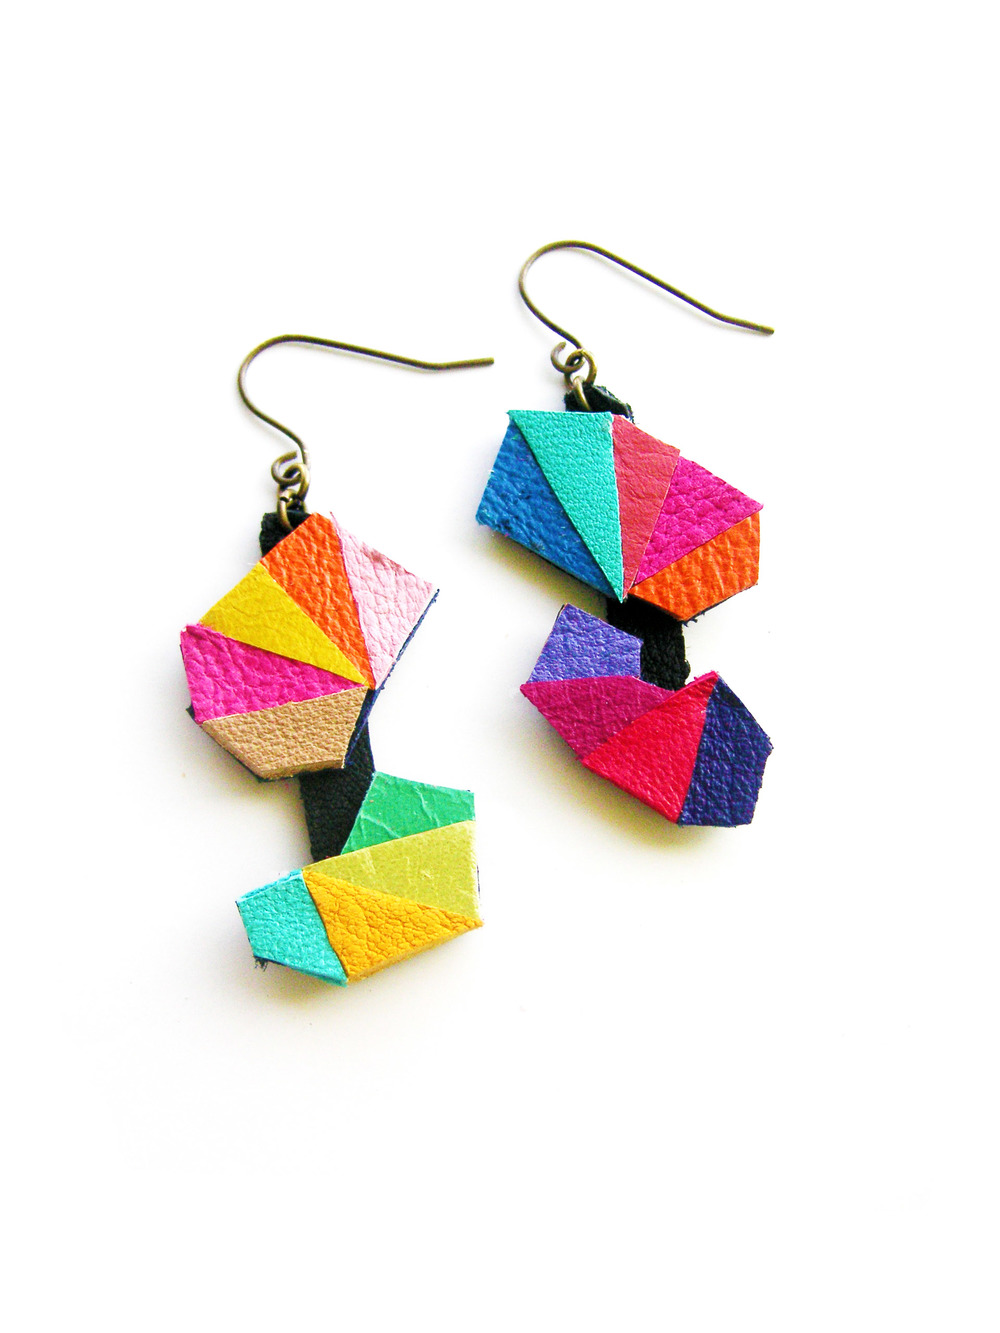 Leather Earrings Geometric Triangle Kaleidoscope 3.jpg